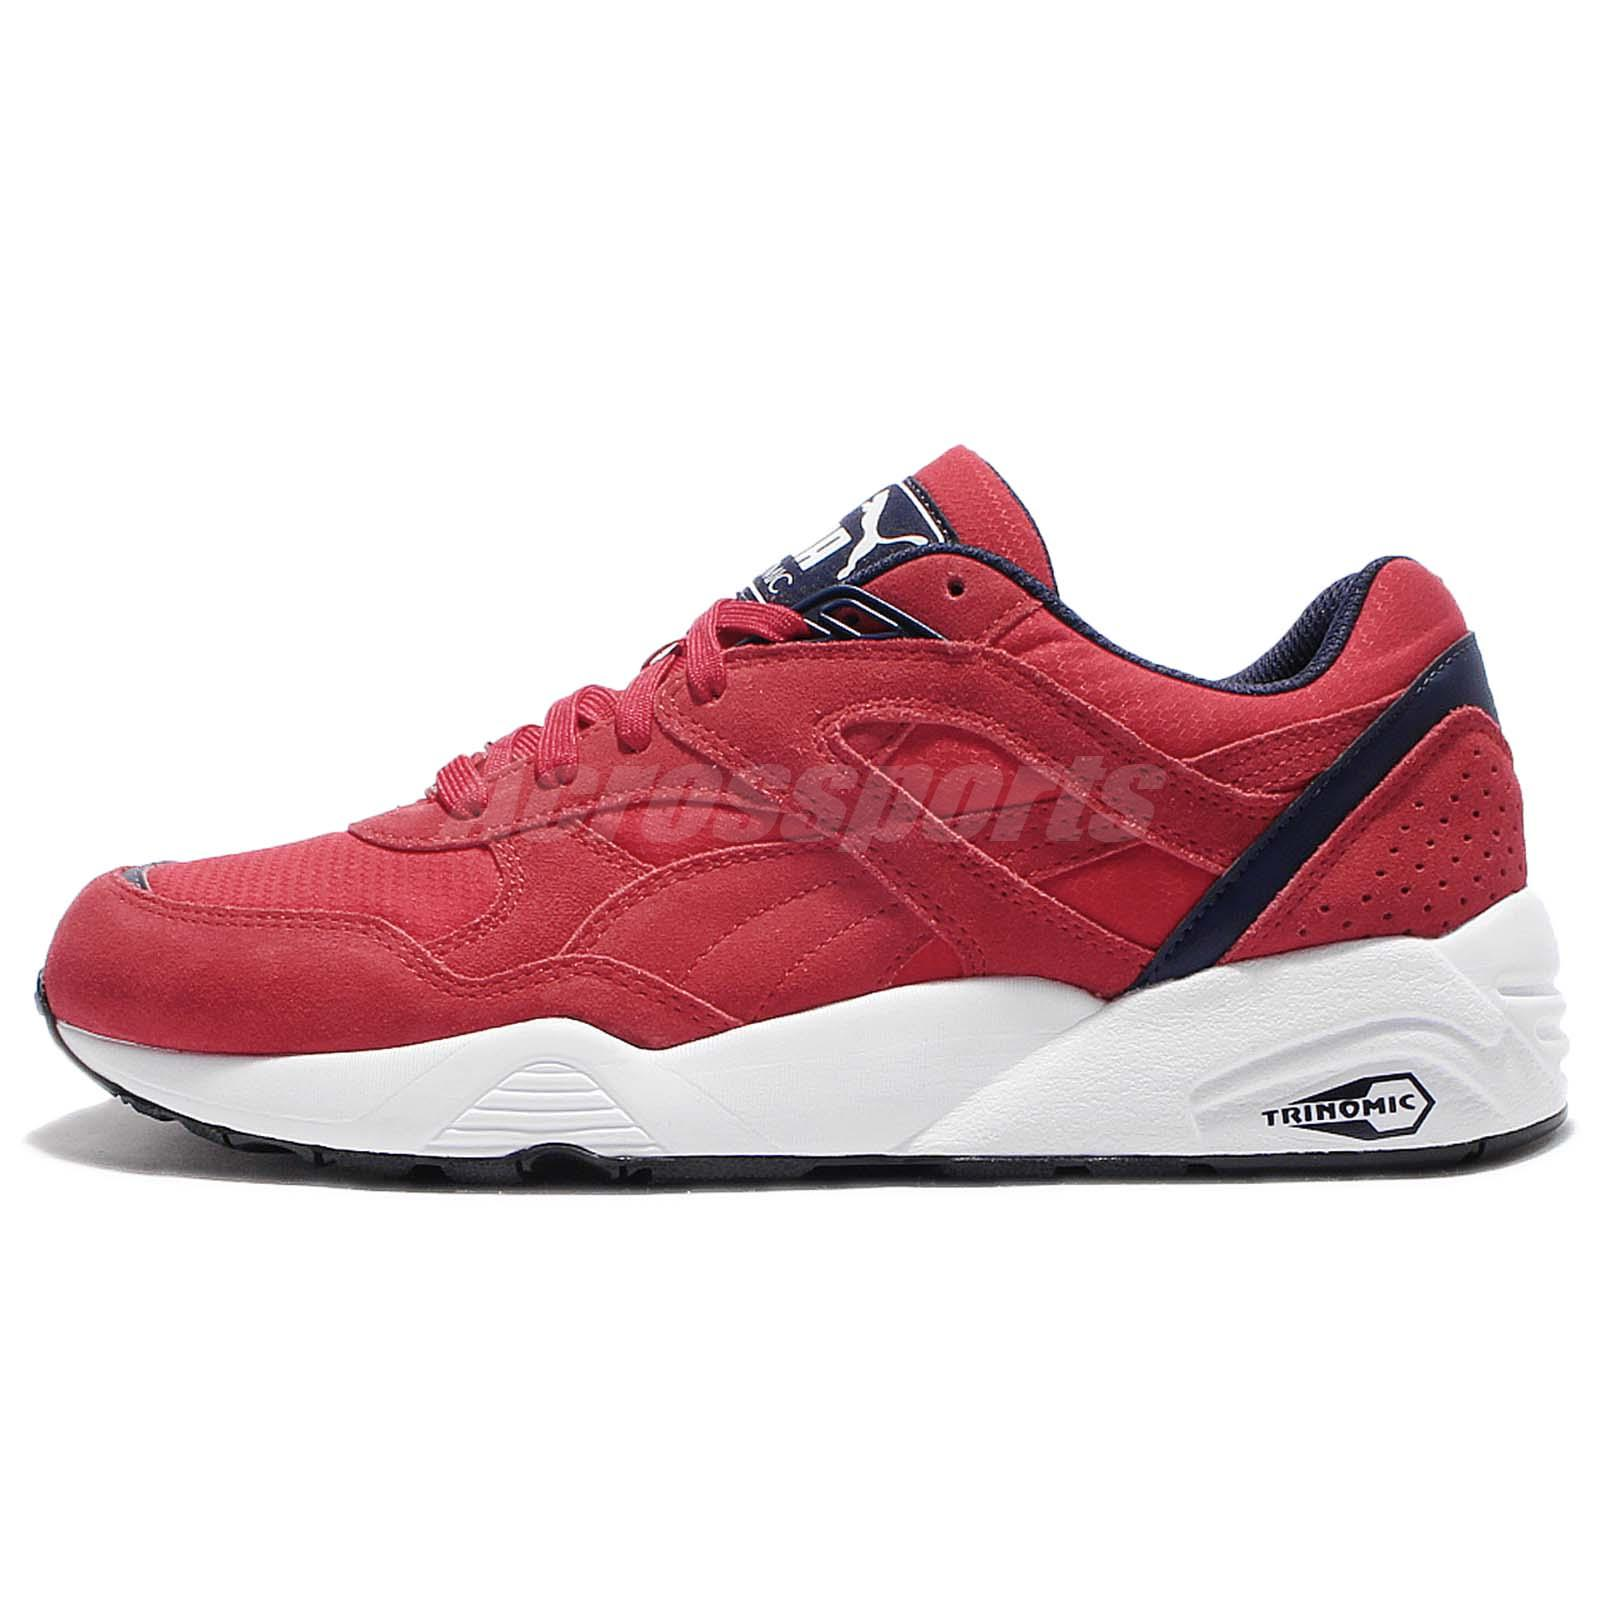 15551c8cf56 ... high risk red 6t0l2ng0 ce448 5dfdf  new arrivals puma r698 red blue  suede trinomic men running shoes sneakers trainers 362570 04 7155e